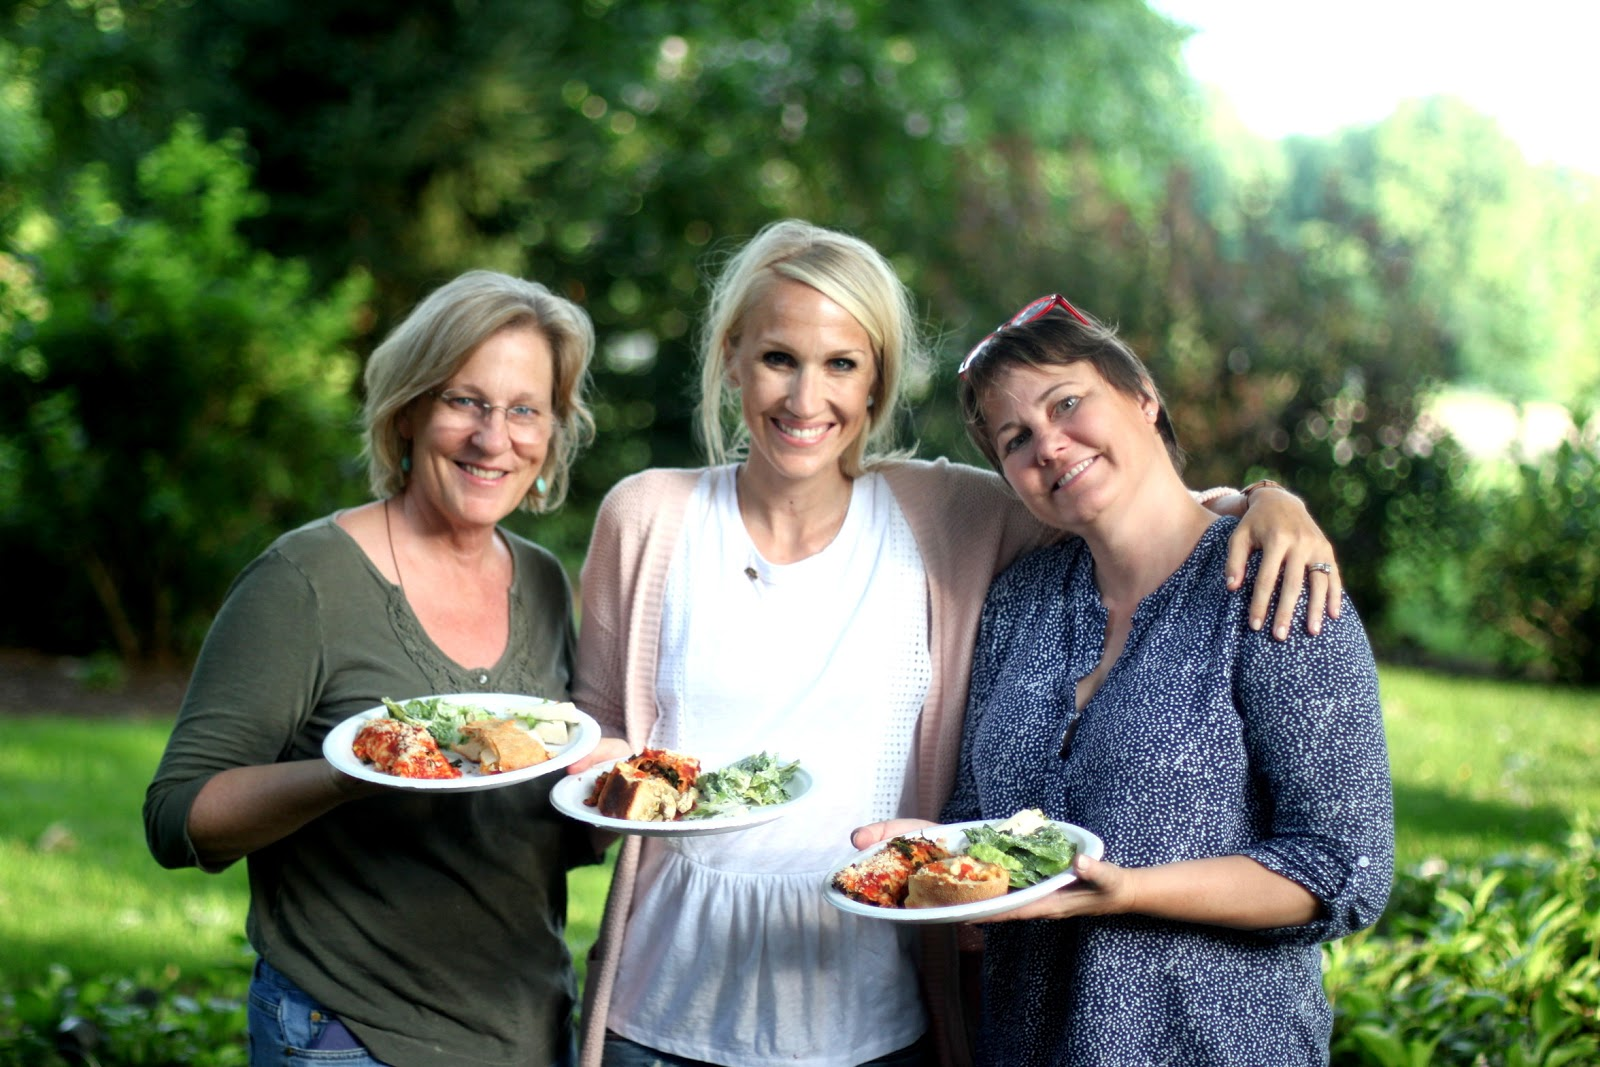 Blue apron telephone number - Blue Apron Kindly So Kindly Sent Us Two Family Meals One Night And I Kindly So Kindly Put My Mom And My Aunt Rebecca To Work With Said Meals